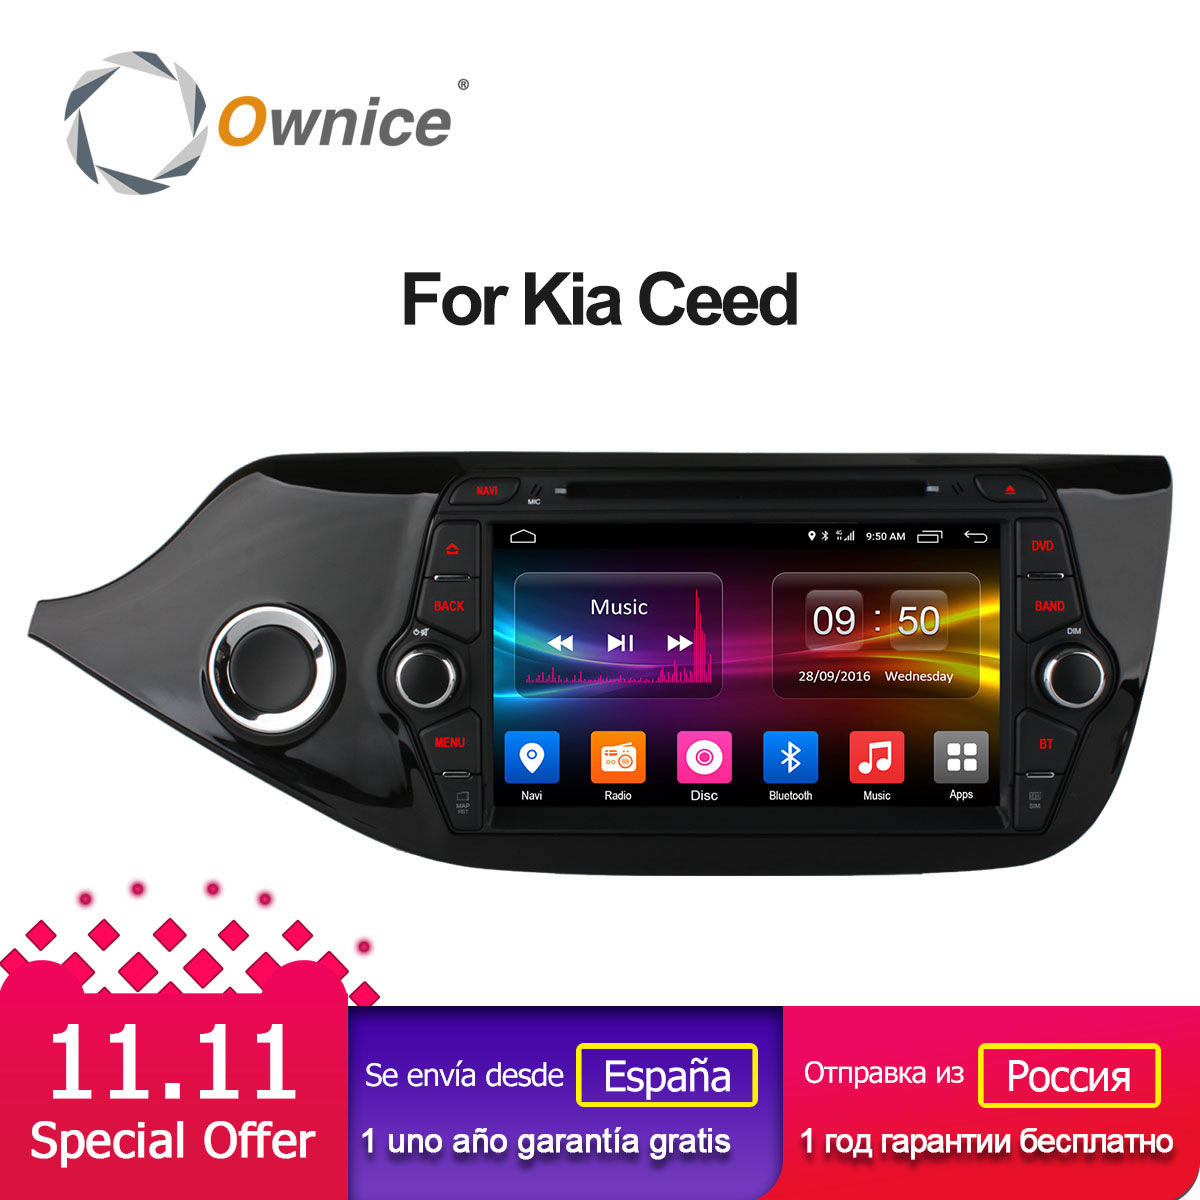 Ownice C500 Octa 8 Core Android 6.0 2DIN 8 1024*600 Car DVD For Kia NEW CEED WIFI Radio GPS 2GB RAM 32GB ROM Support 4G DAB+ ownice c500 g10 octa core 2gb ram 32g rom android car dvd 8 1 gps for mazda 6 summit 2009 2015 wifi 4g lte radio dab dvr